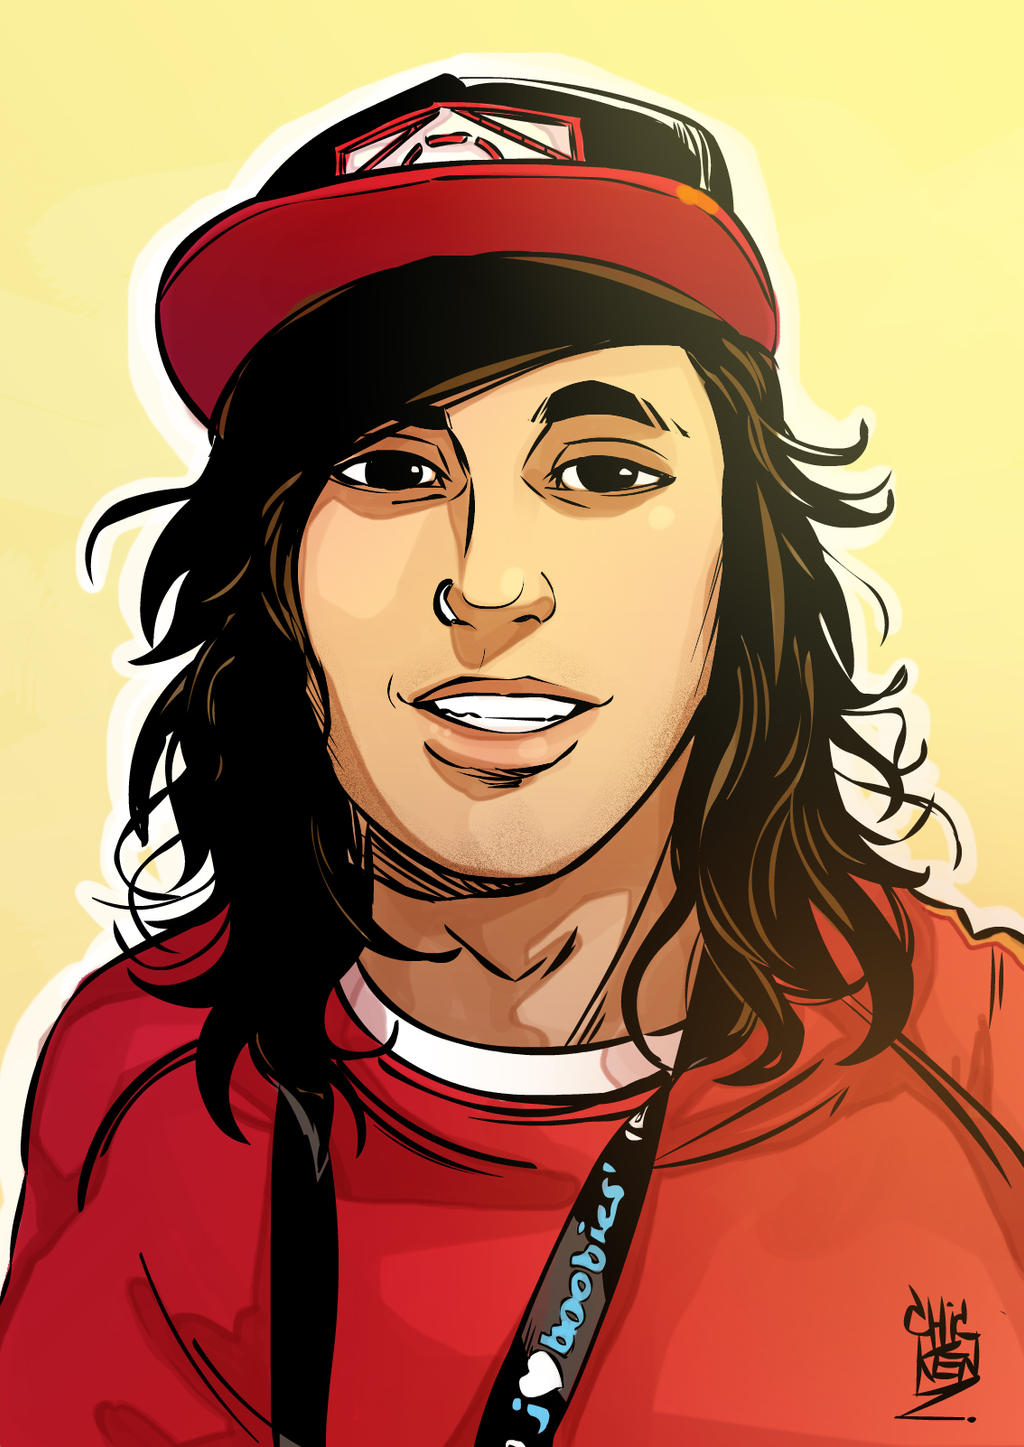 from Landon vic fuentes dating 2014